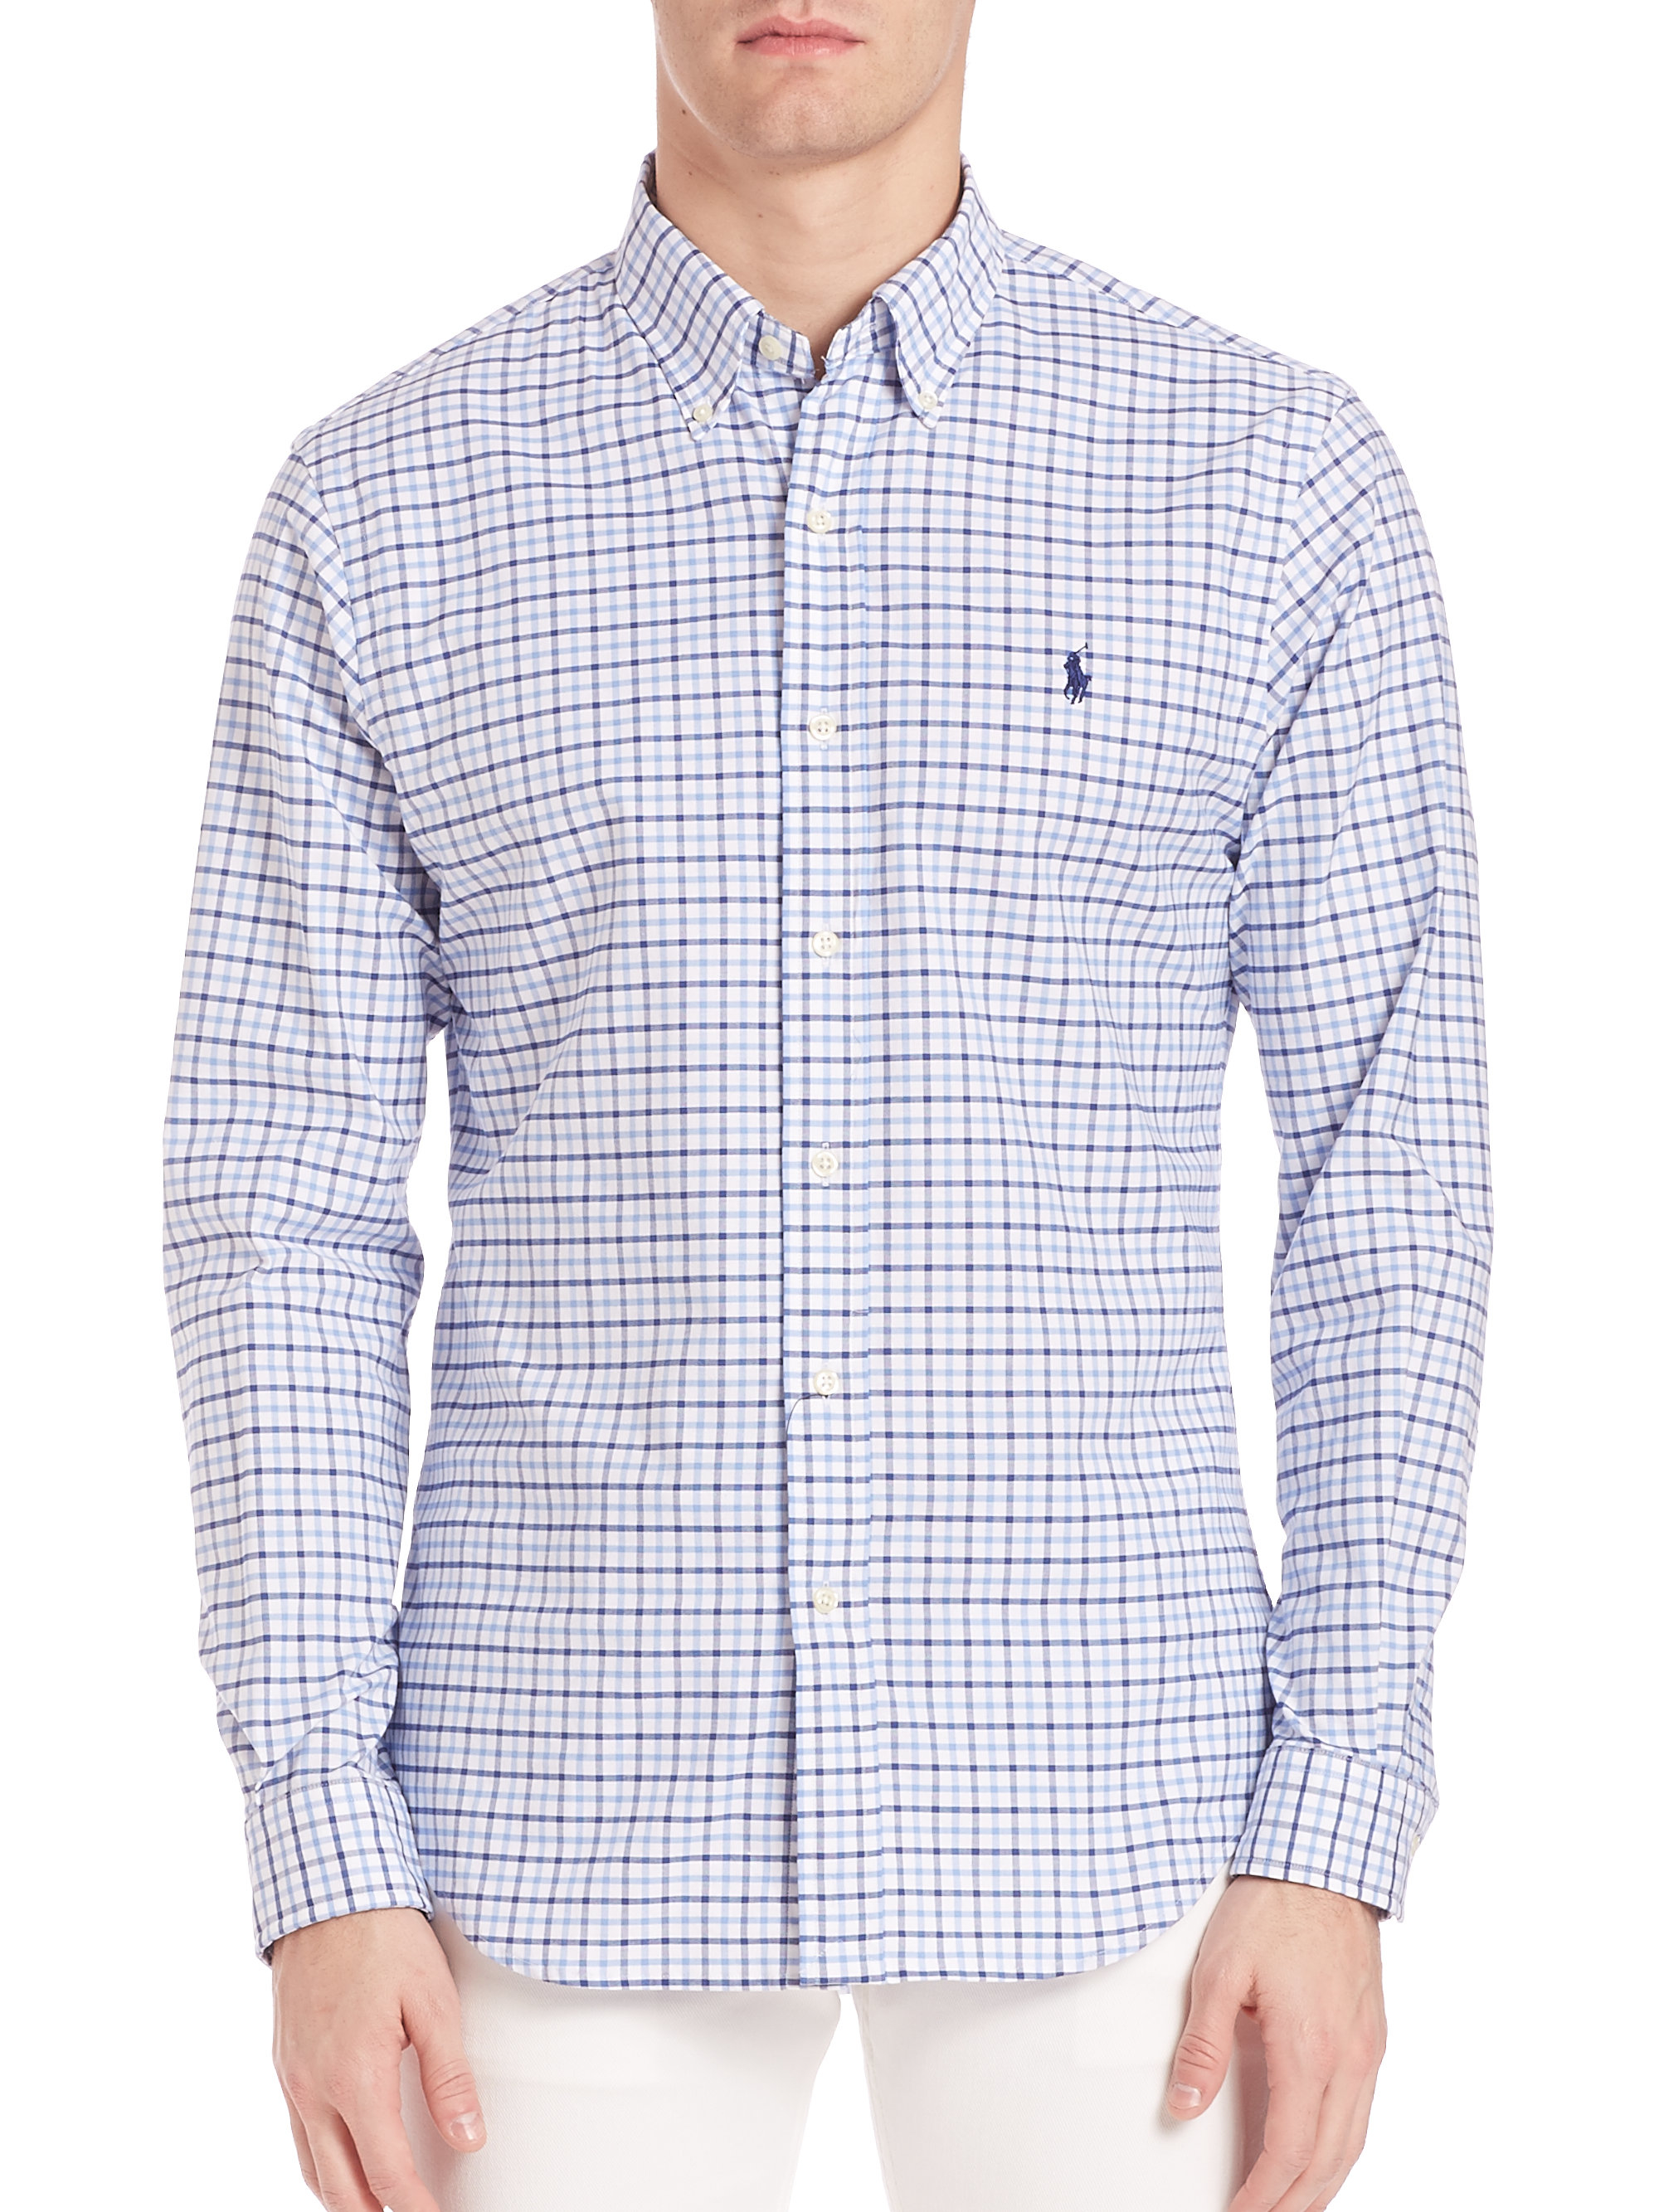 ff5793d4ad0e0 Lyst - Polo Ralph Lauren Slim-fit Stretch Oxford Checked Sportshirt ...